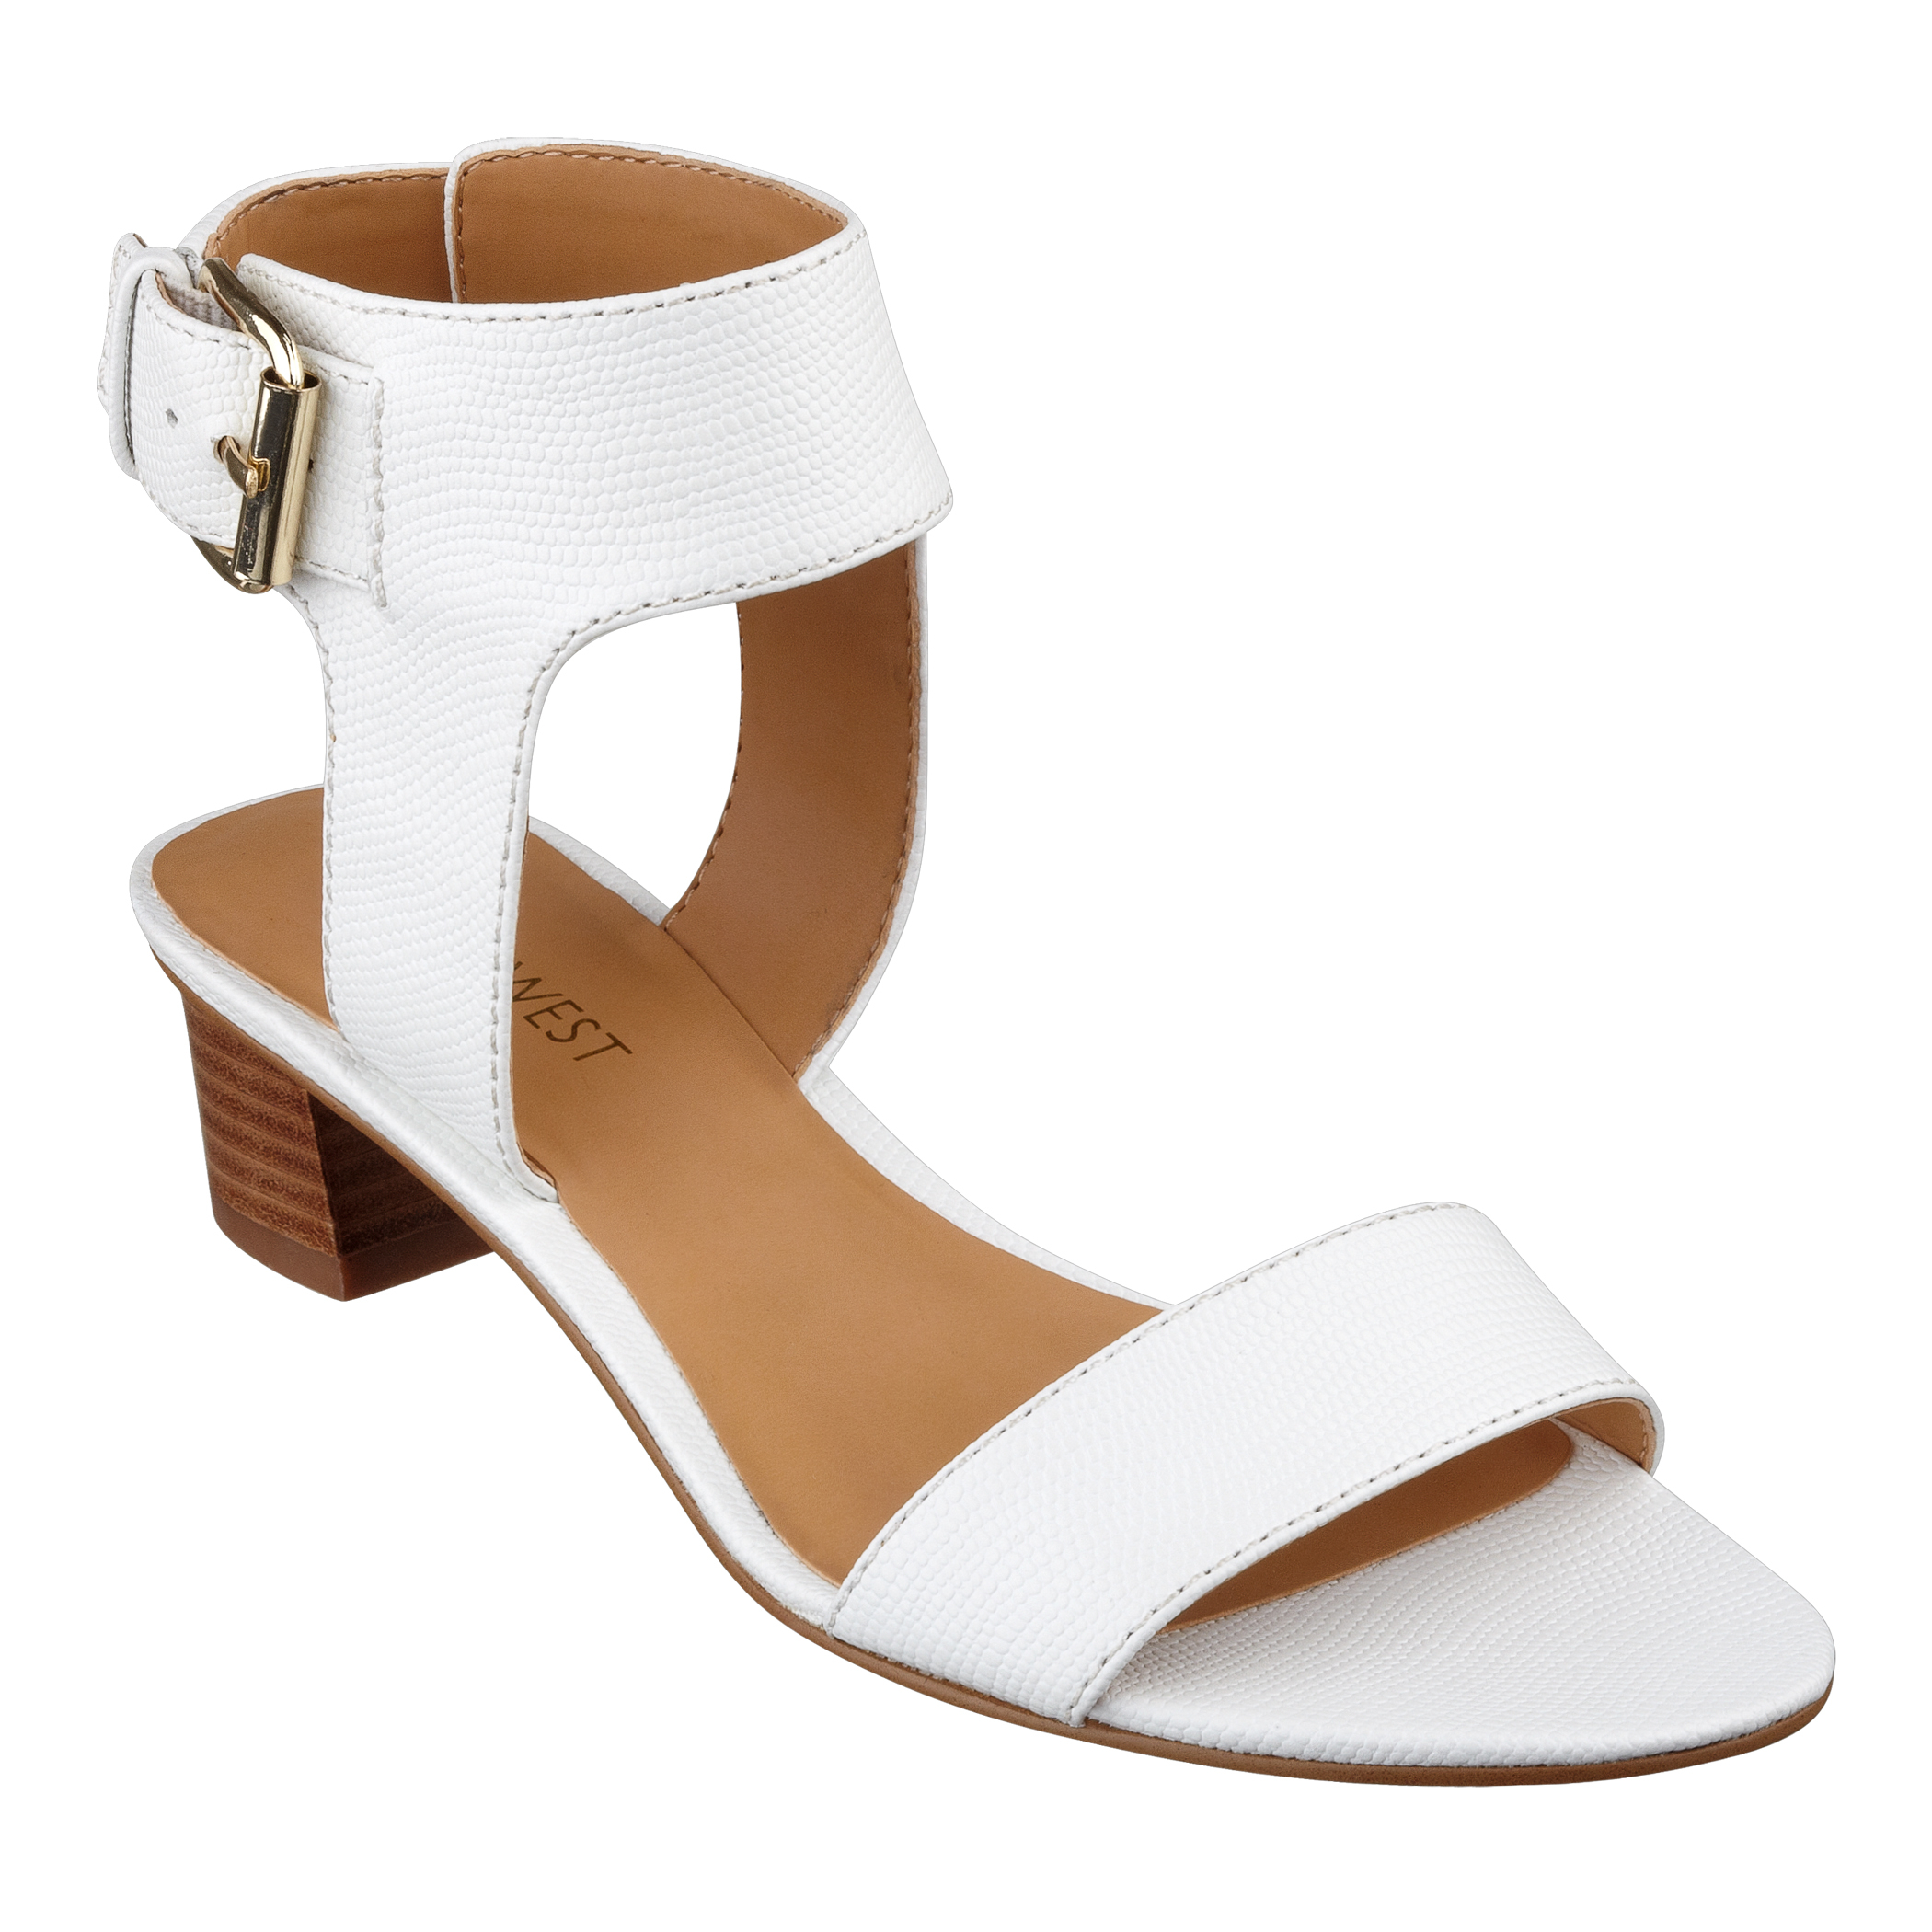 Nine West Tasha Opentoe Anklestrap Sandals Sandal In White